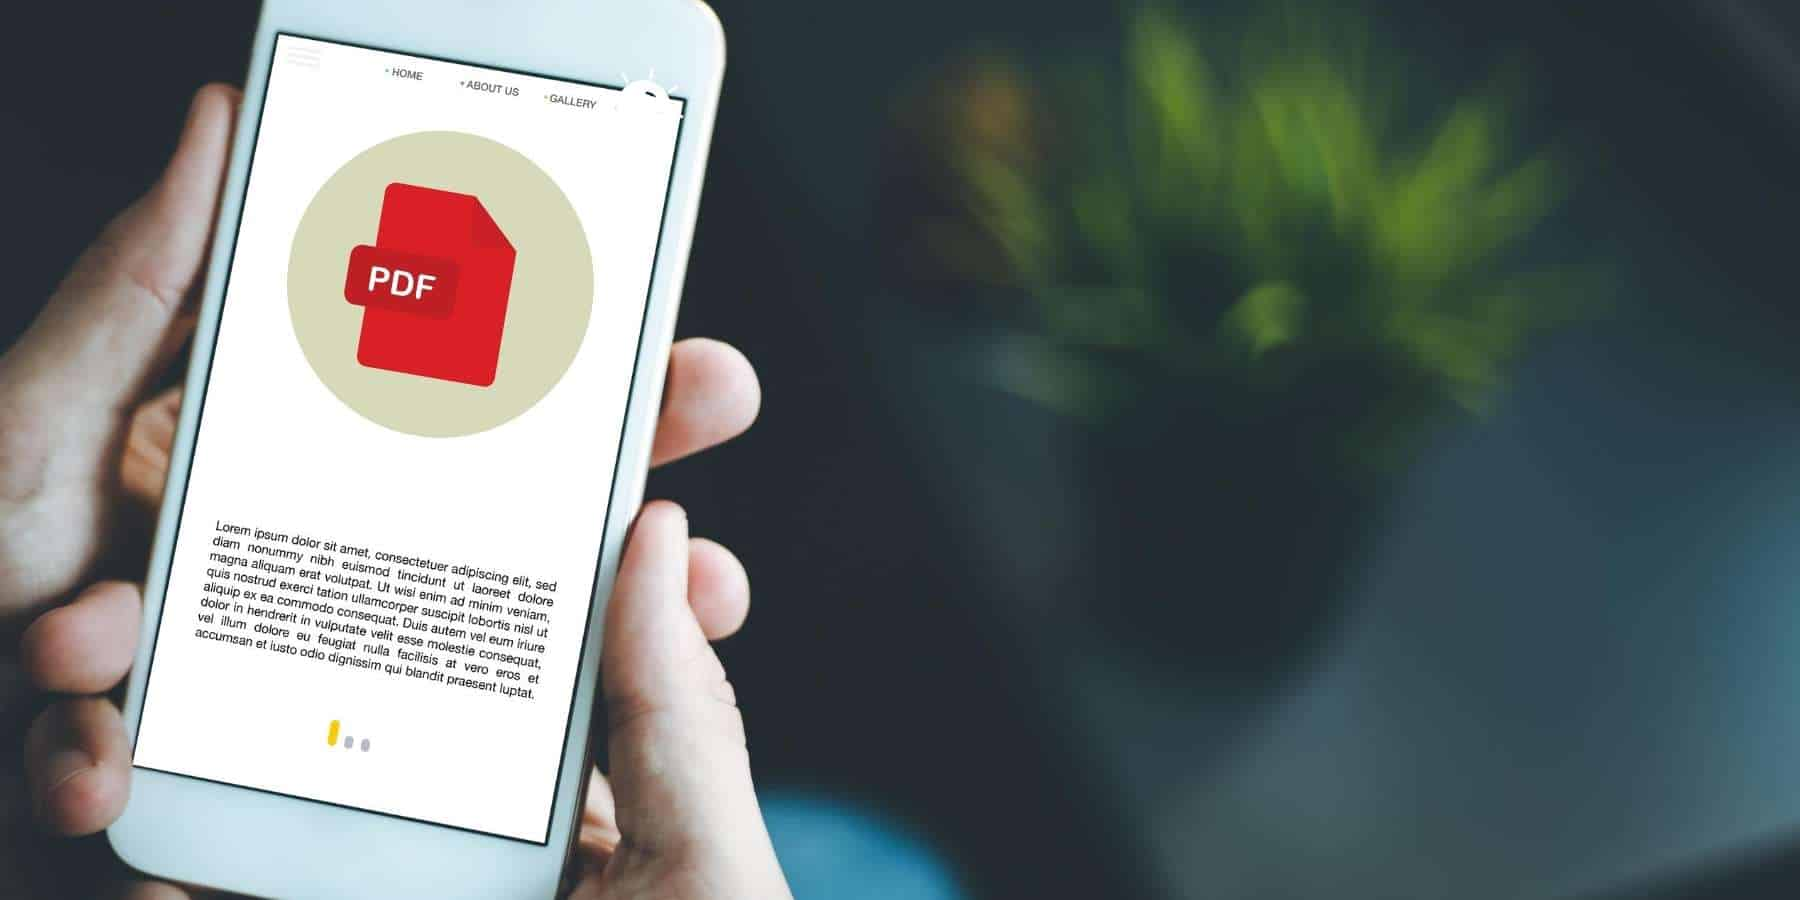 How To Open Pdf On Android In Under 60 Seconds Joyofandroid Com